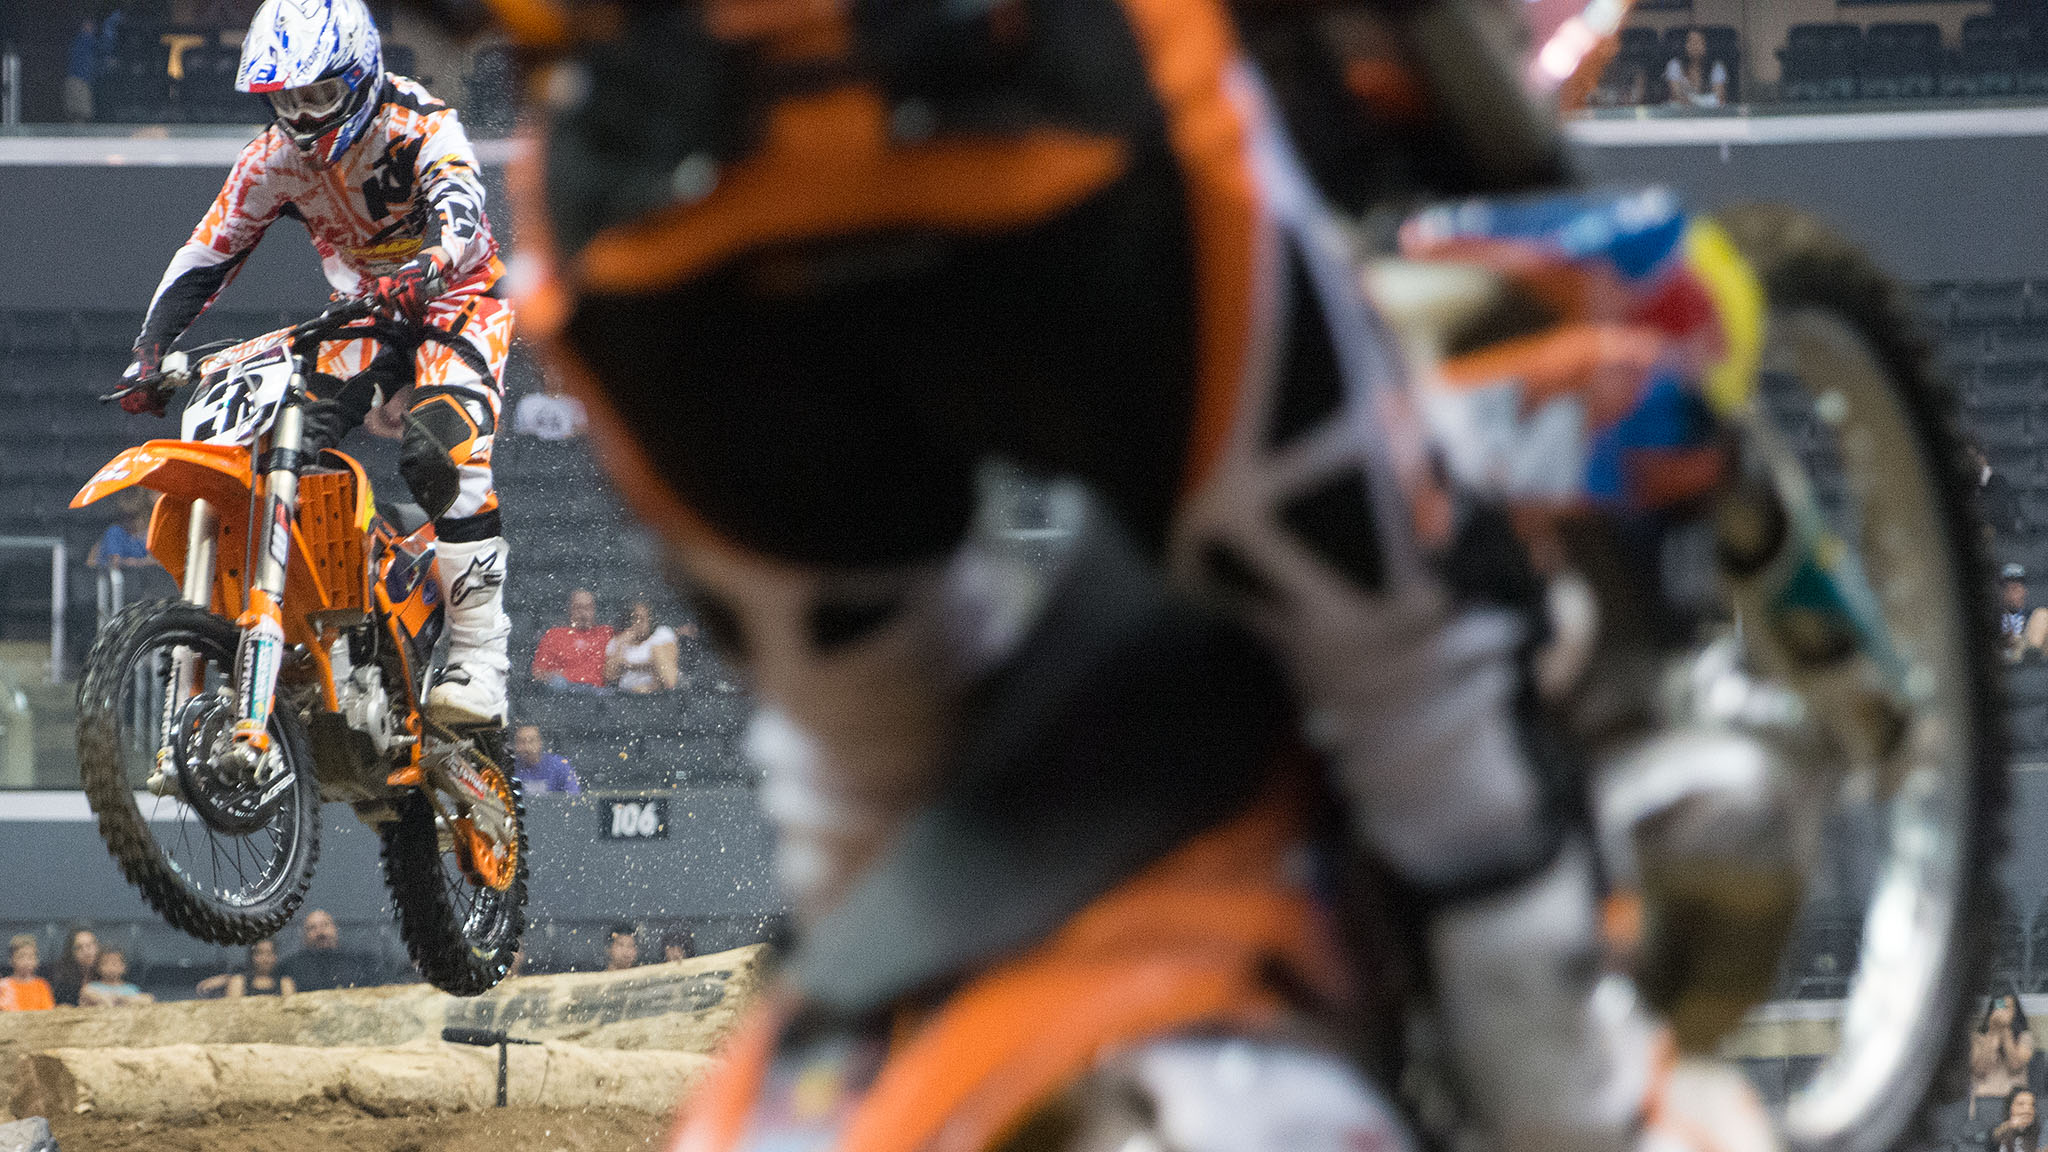 Enduro X has become one of the most hotly contested events of the X Games this year. Taddy Blazusiak and Mike Brown (shown here) have gone back and forth for the win since Enduro X first debuted at X Games in 2011. In L.A., Blazusiak took the gold.